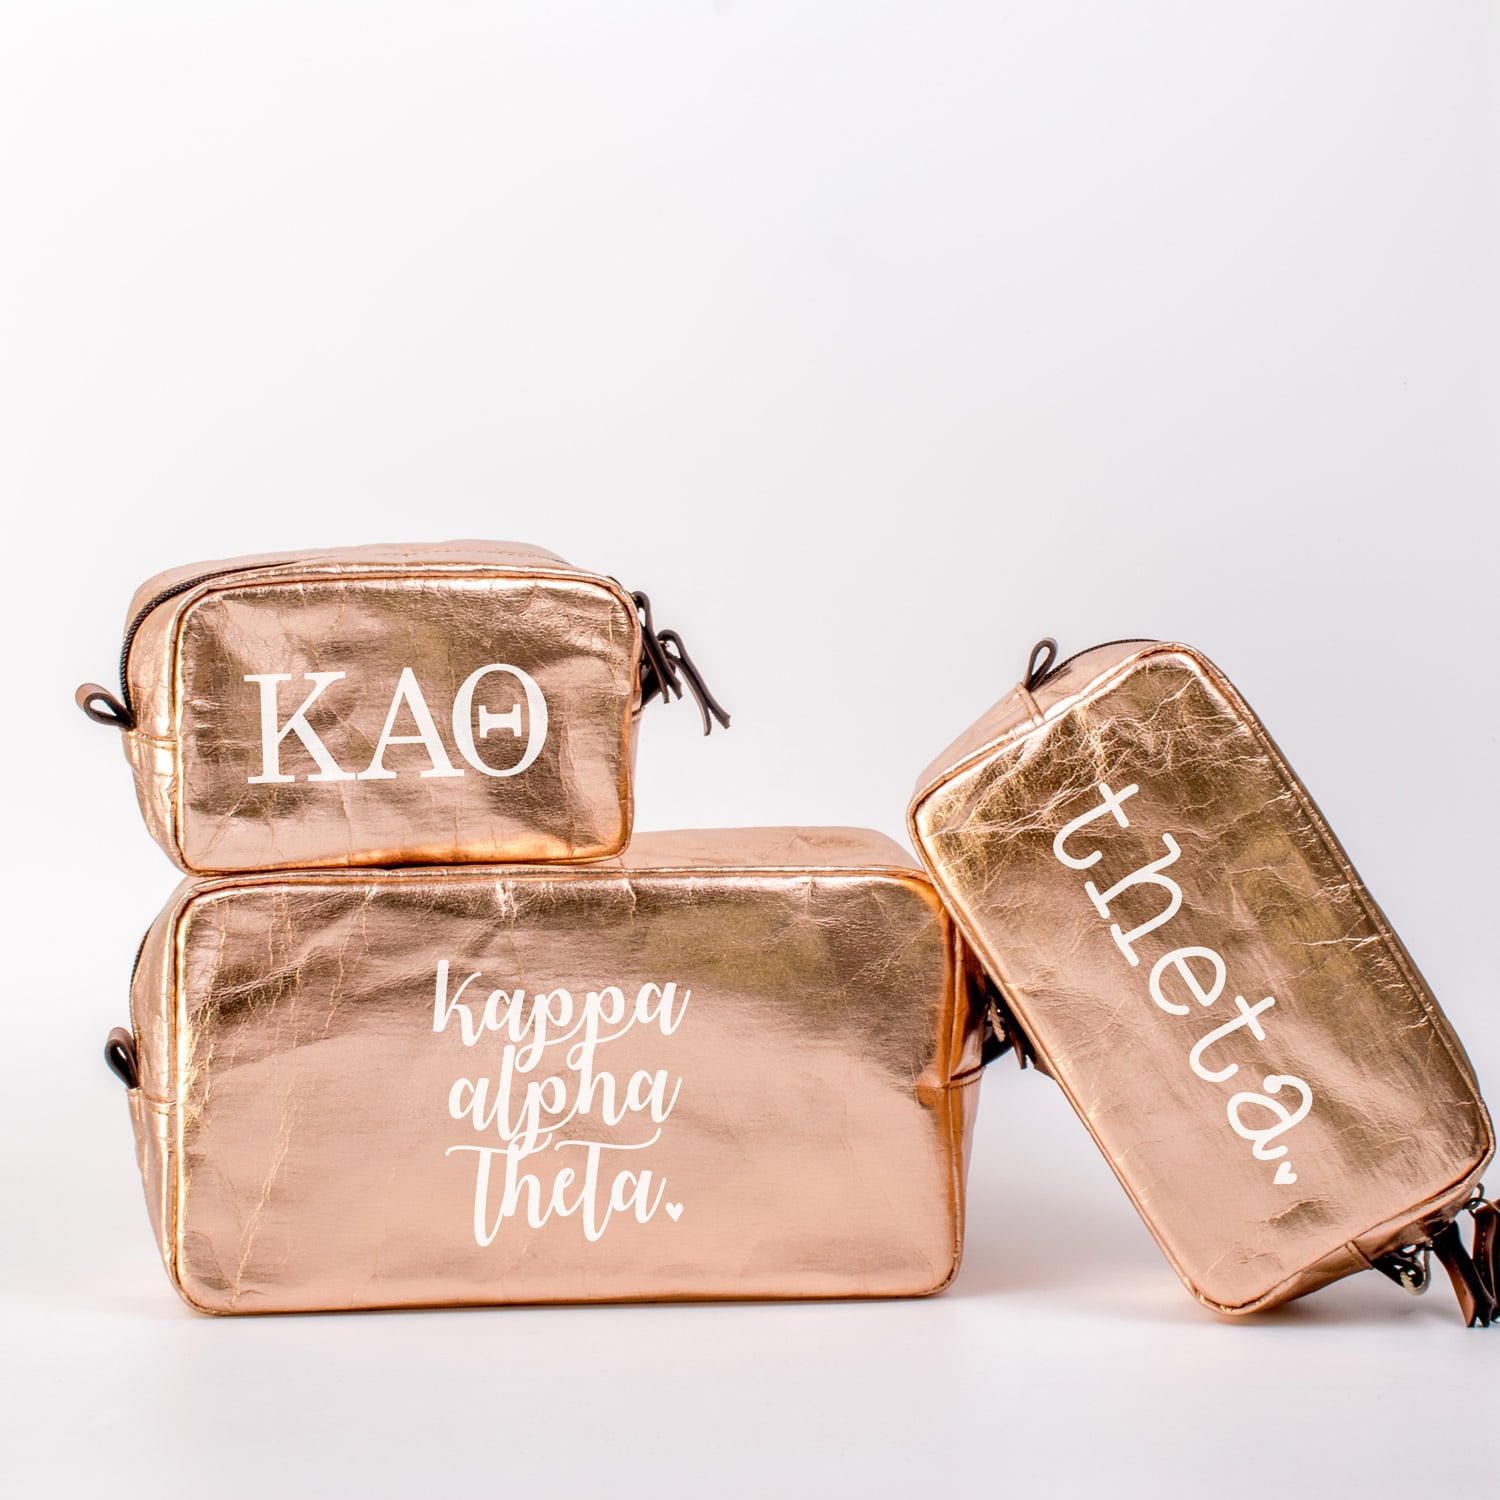 726204a4b5b Kappa Alpha Theta Cosmetic Bag Set from www.alistgreek.com